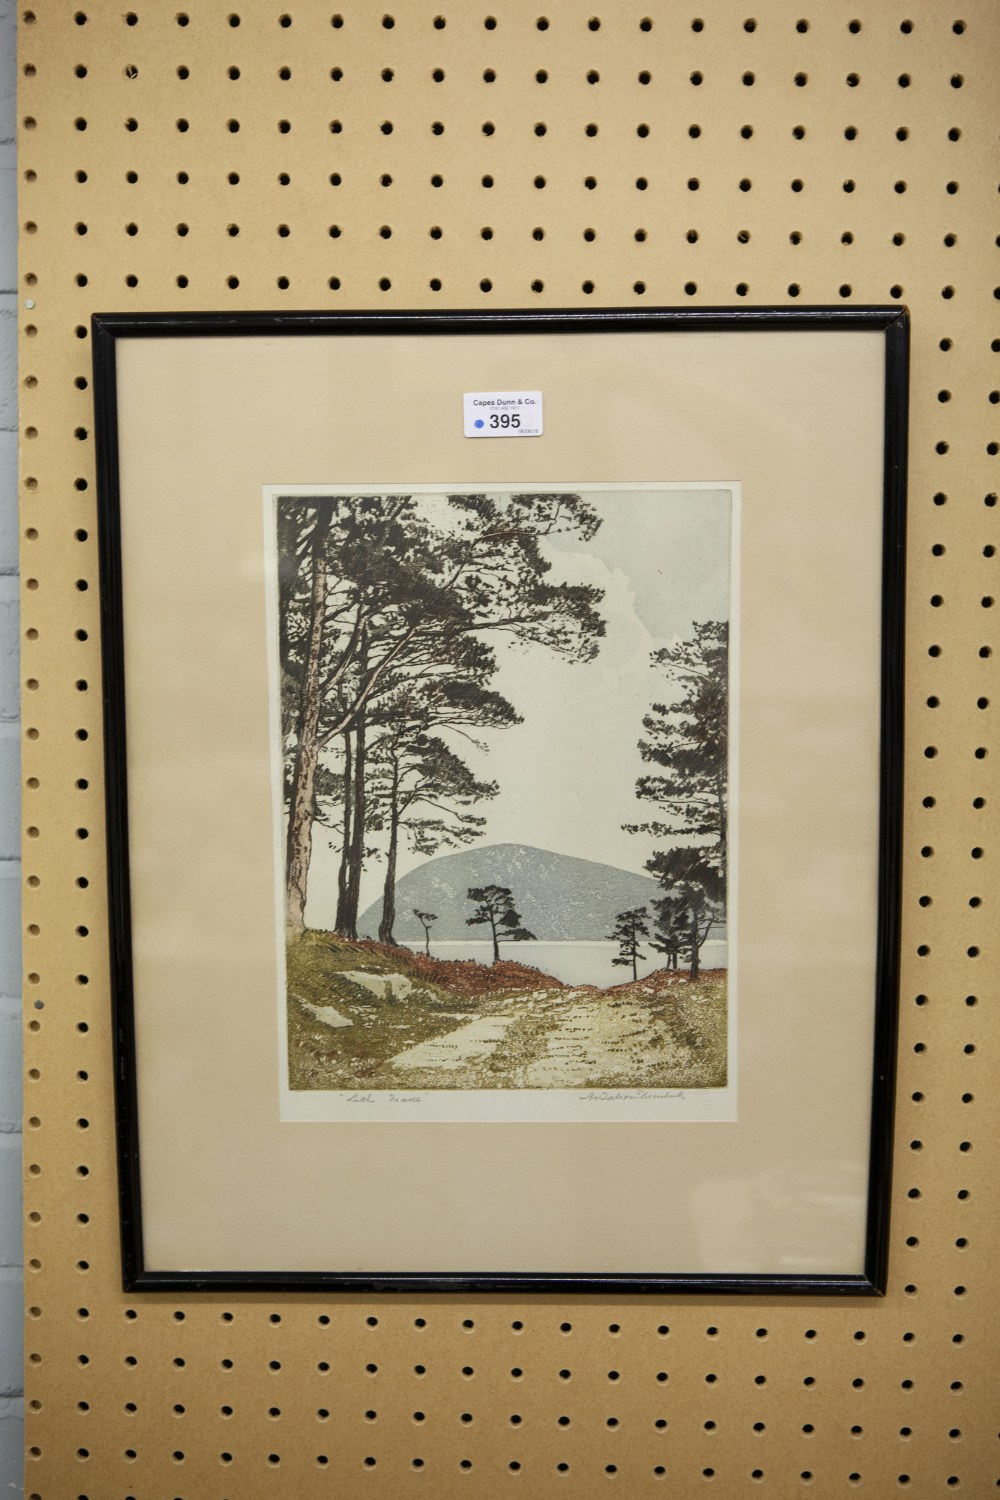 Lot 395 - ANDREW WATSON TURNBULL (b.1874) AQUATINT PRINTED IN COLOUR 'Loch Maree' Signed and titled in